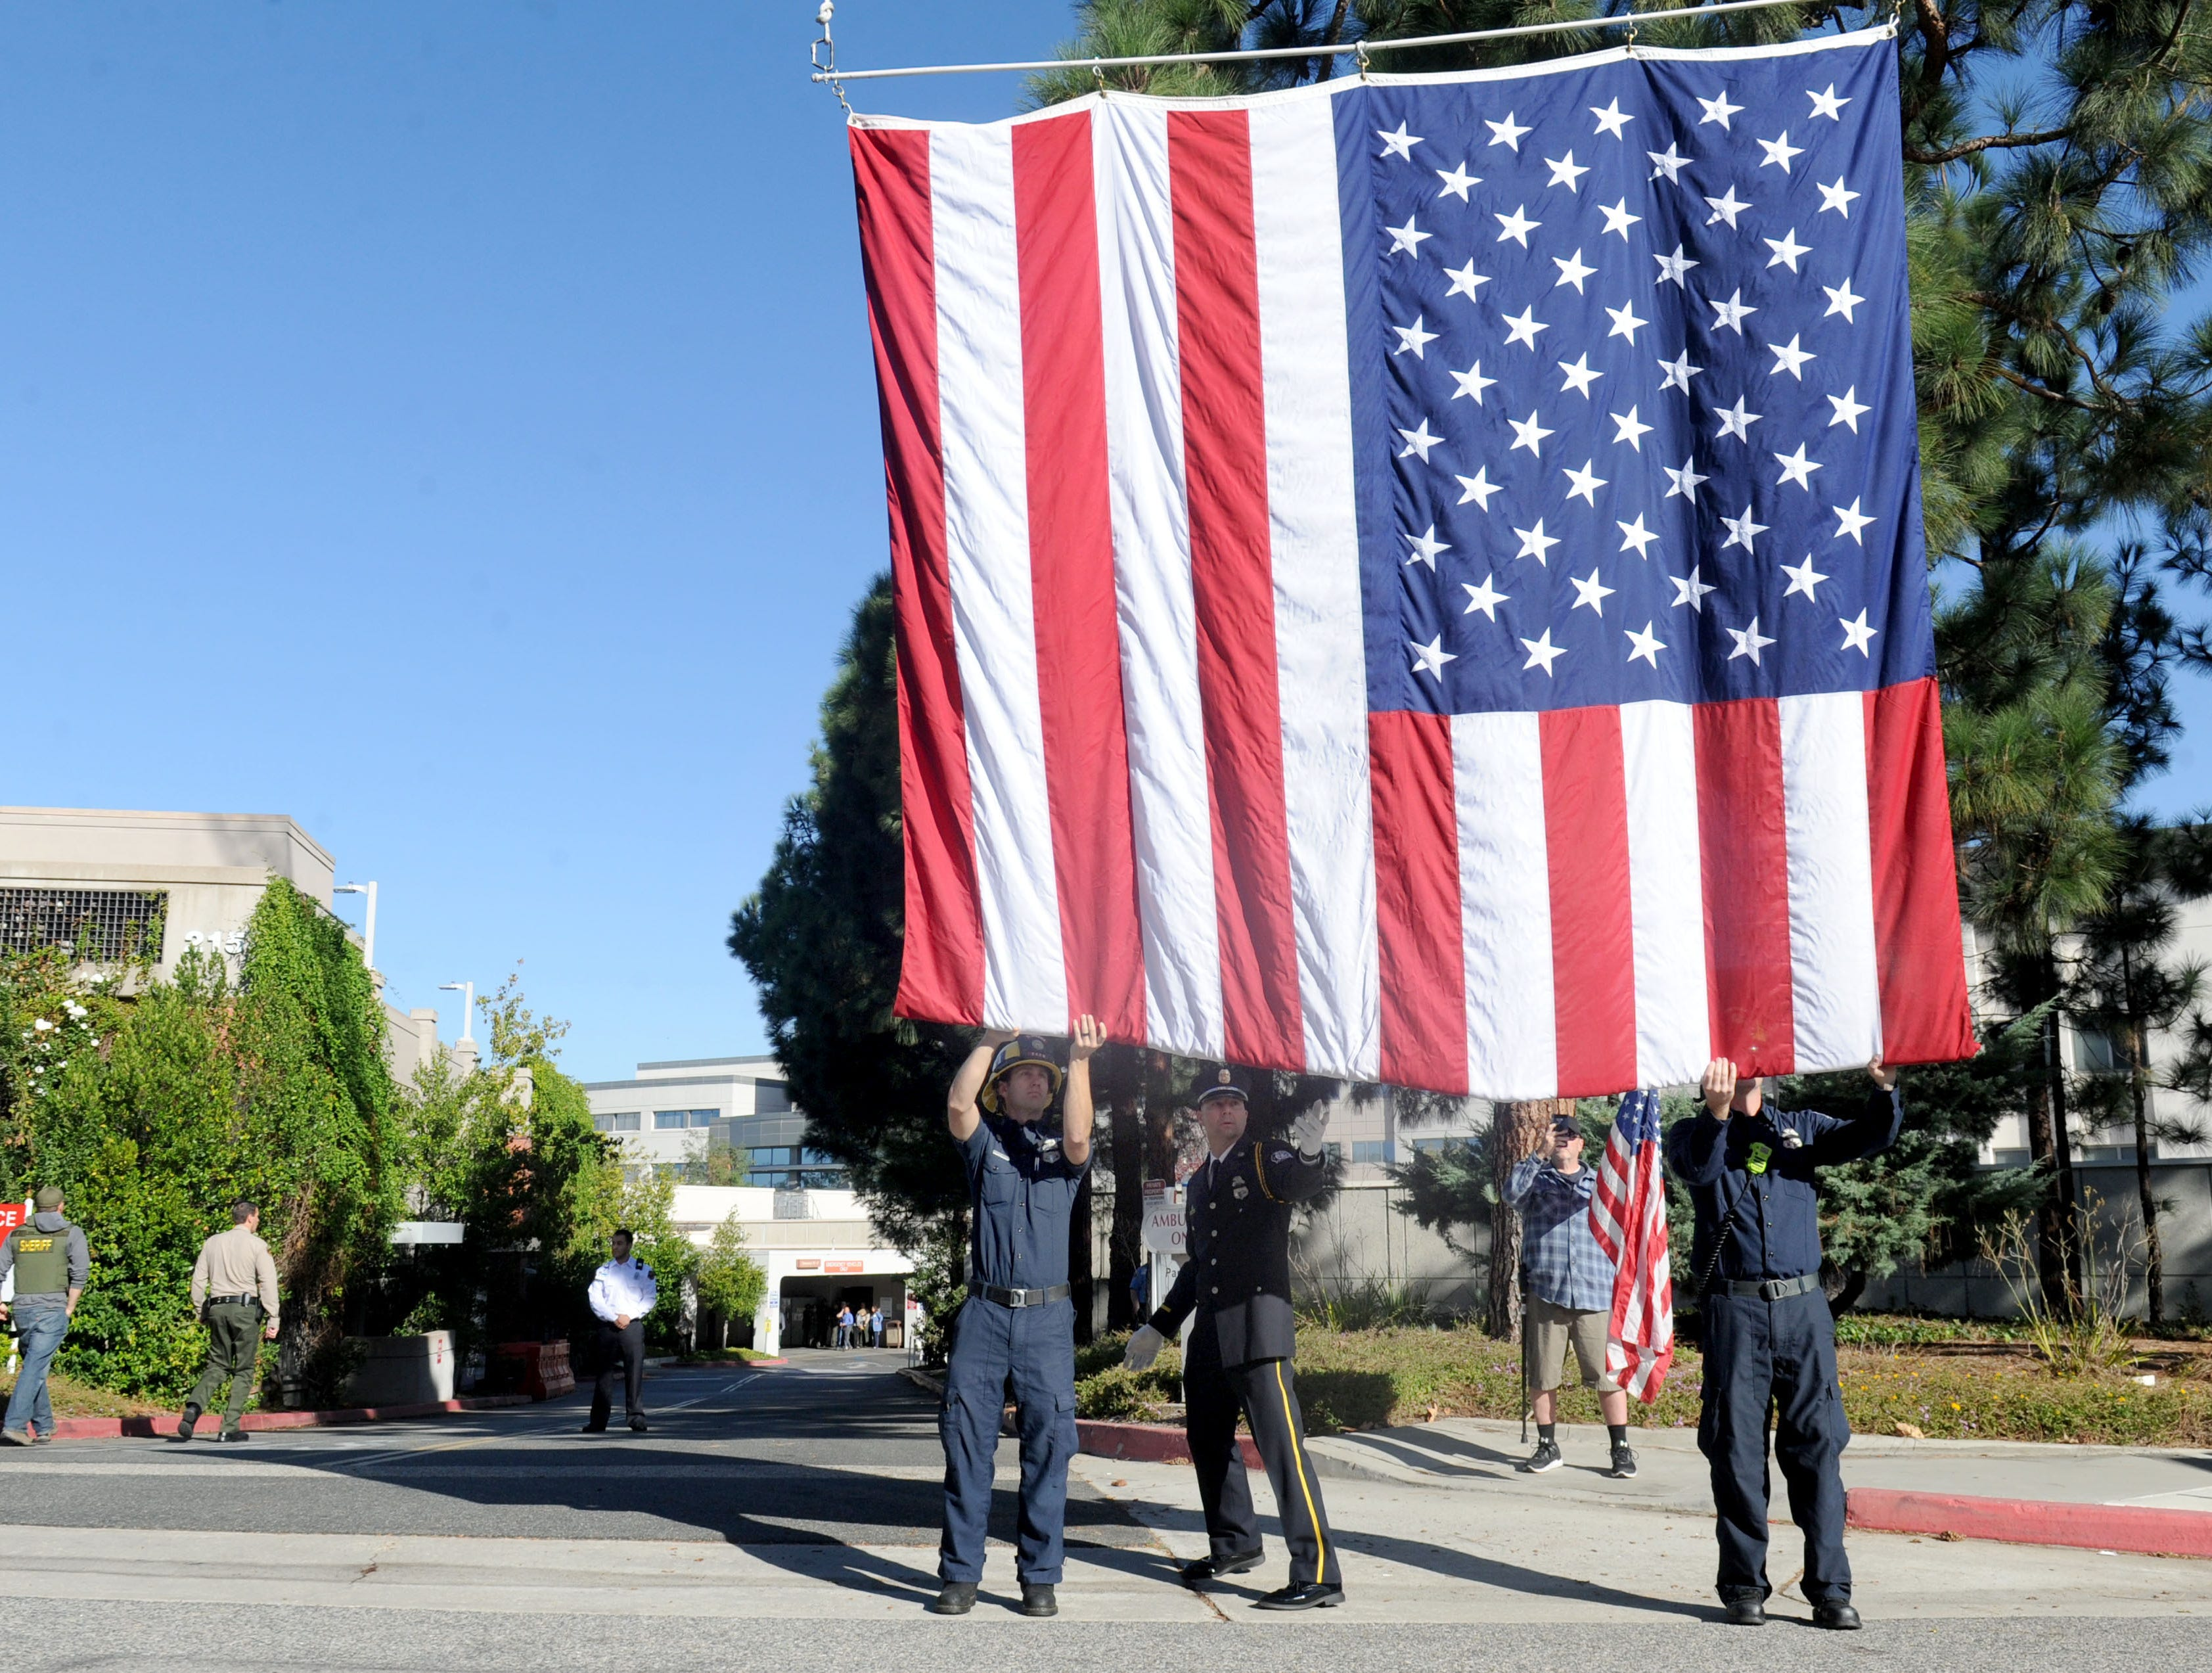 An American flag is raised at the procession of Sgt. Ron Helus' body at Los Robles Regional Medical Center Thursday morning. He was killed at the shooting at the Borderline Bar & Grill Wednesday night in Thousand Oaks.